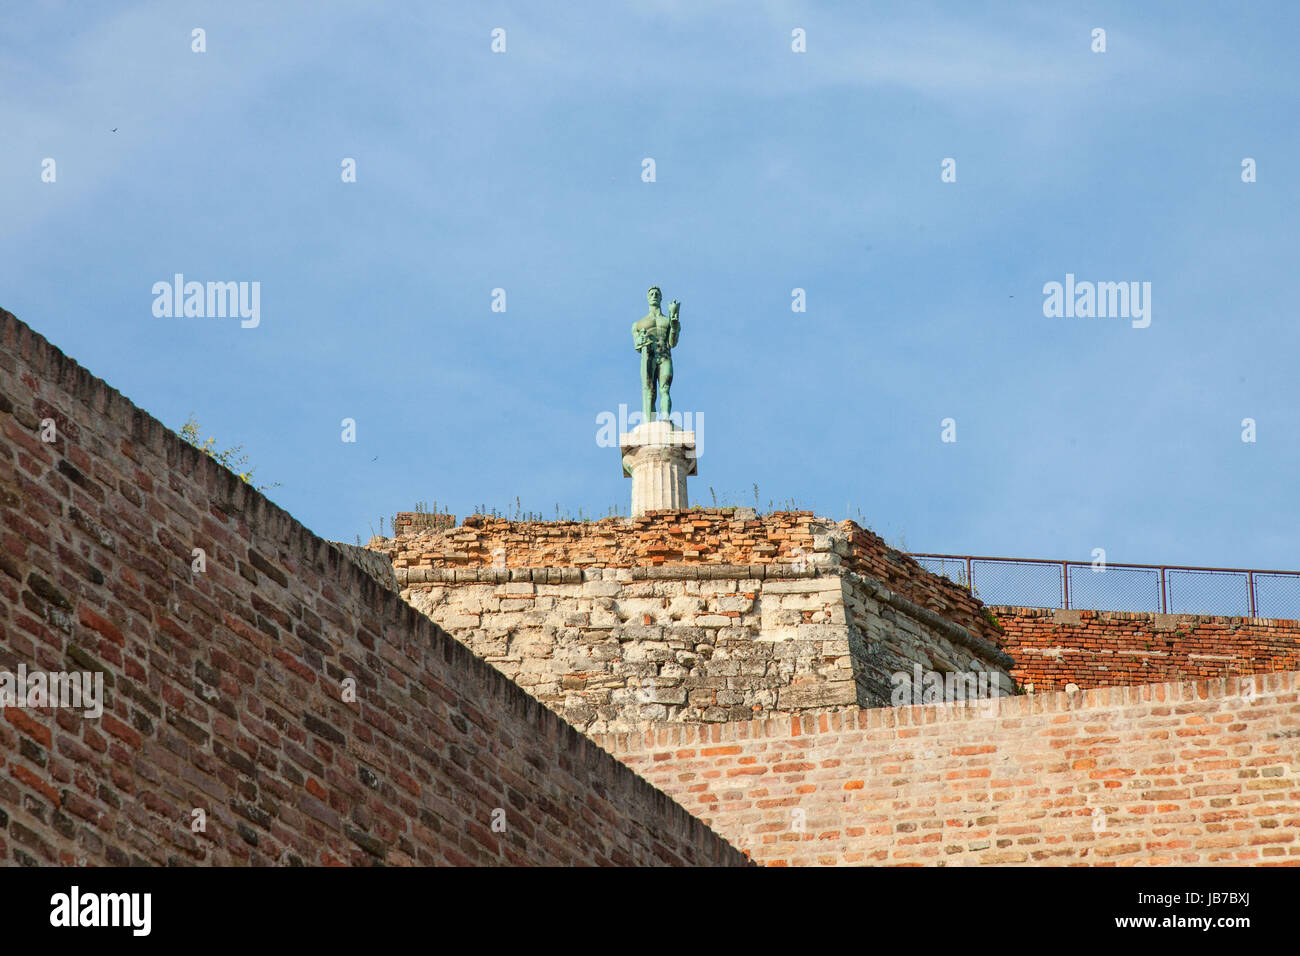 Victor statue on Kalemegdan fortress seen from the bottom in Belgrade, Serbia   Picture of the iconic victory statue - Stock Image